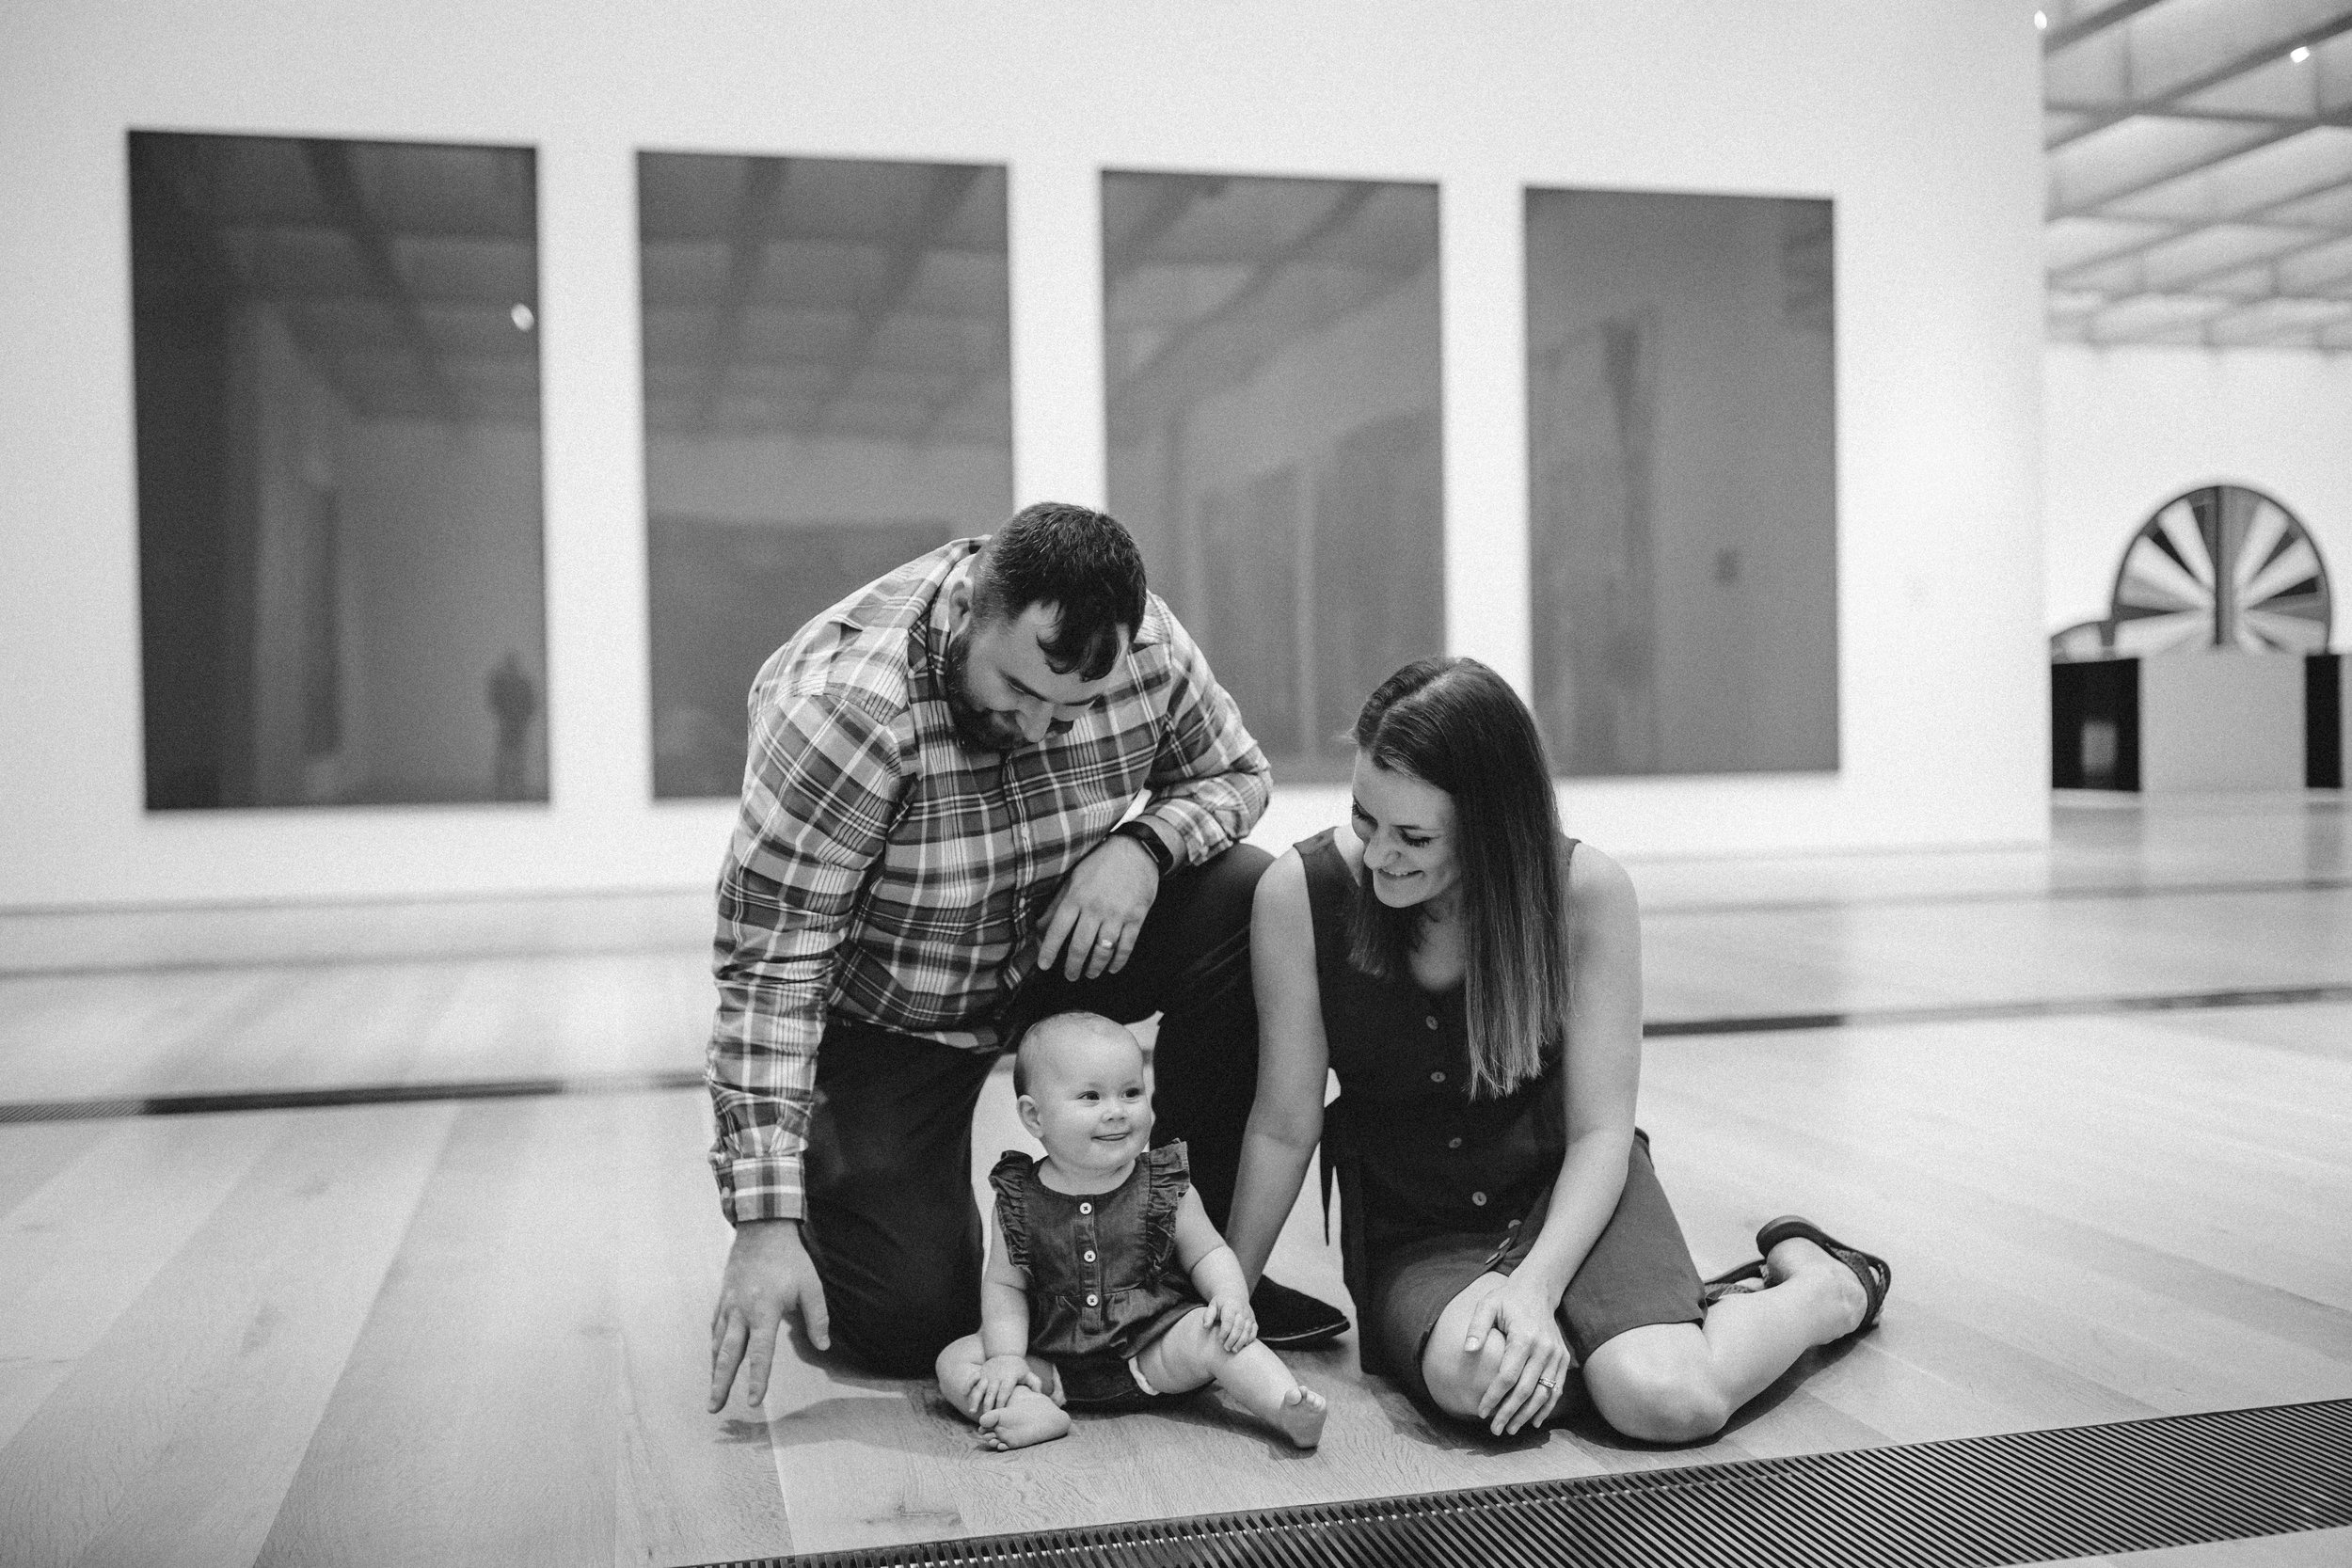 John Pat, Maggie James and Stephanie. Maggie James is the most perfect squishy 10 month old baby ever.